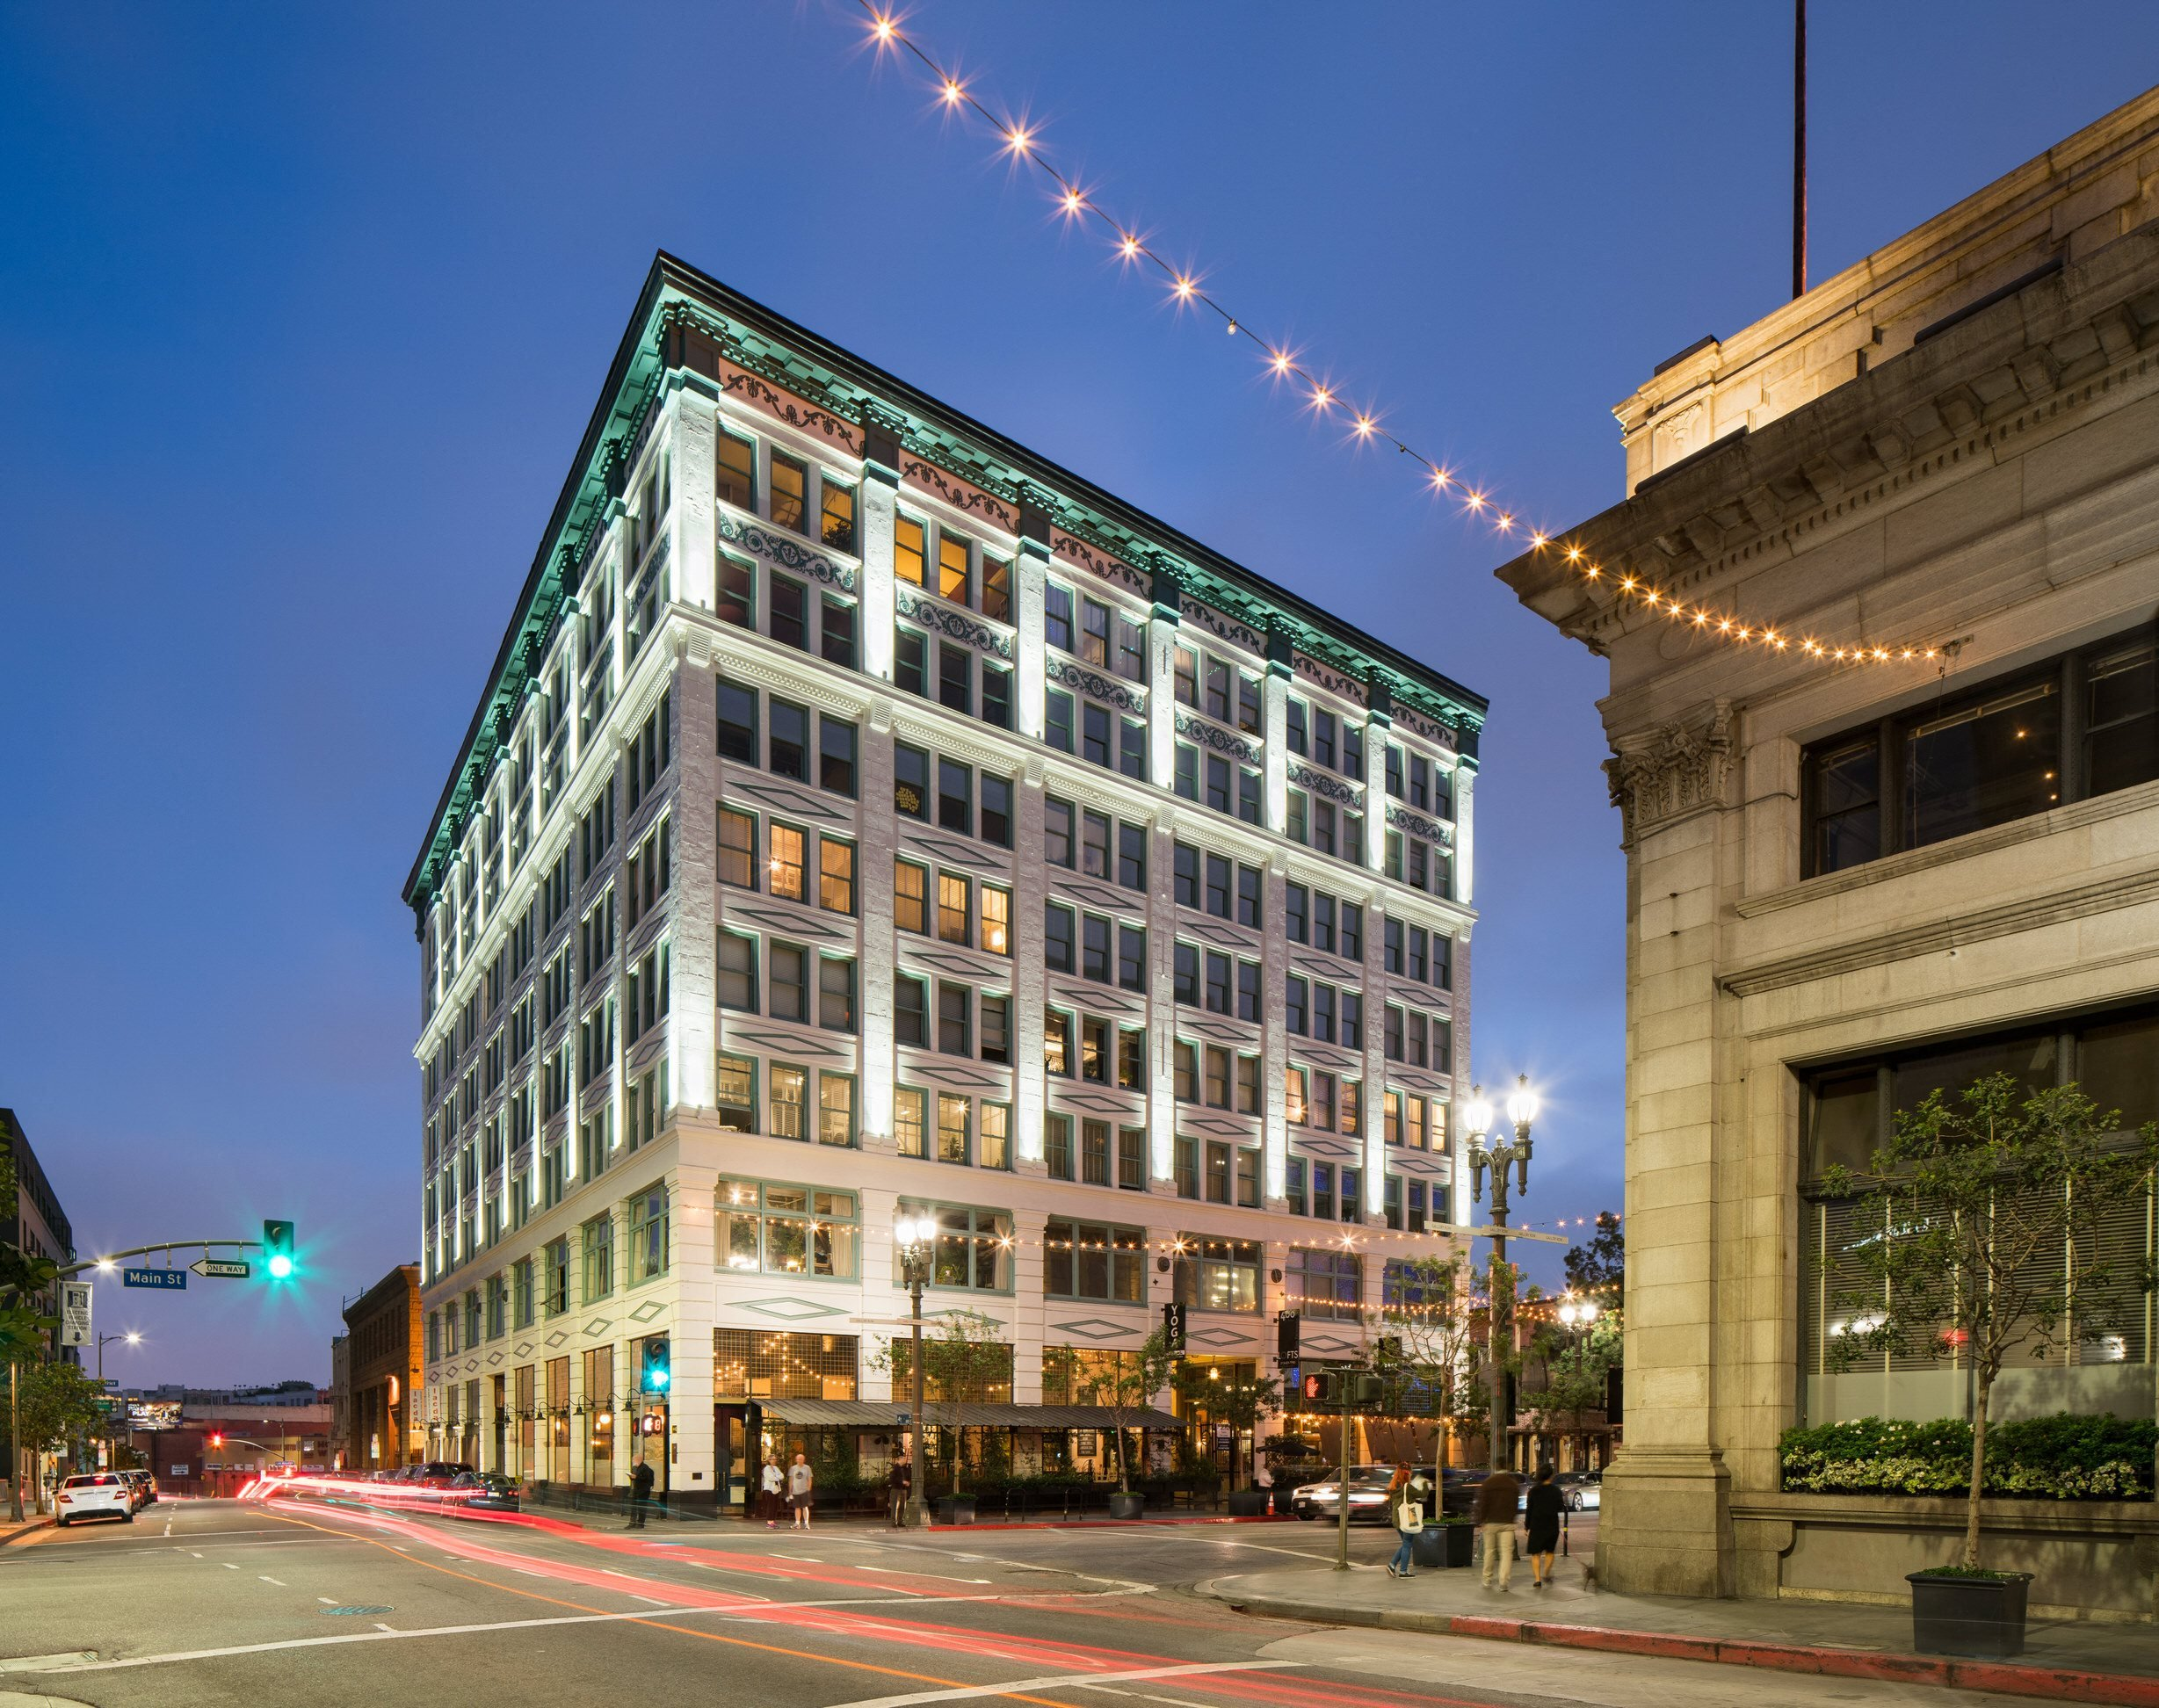 Exterior Photo of San Fernando Building Lofts in Downtown Los Angeles, CA 90013